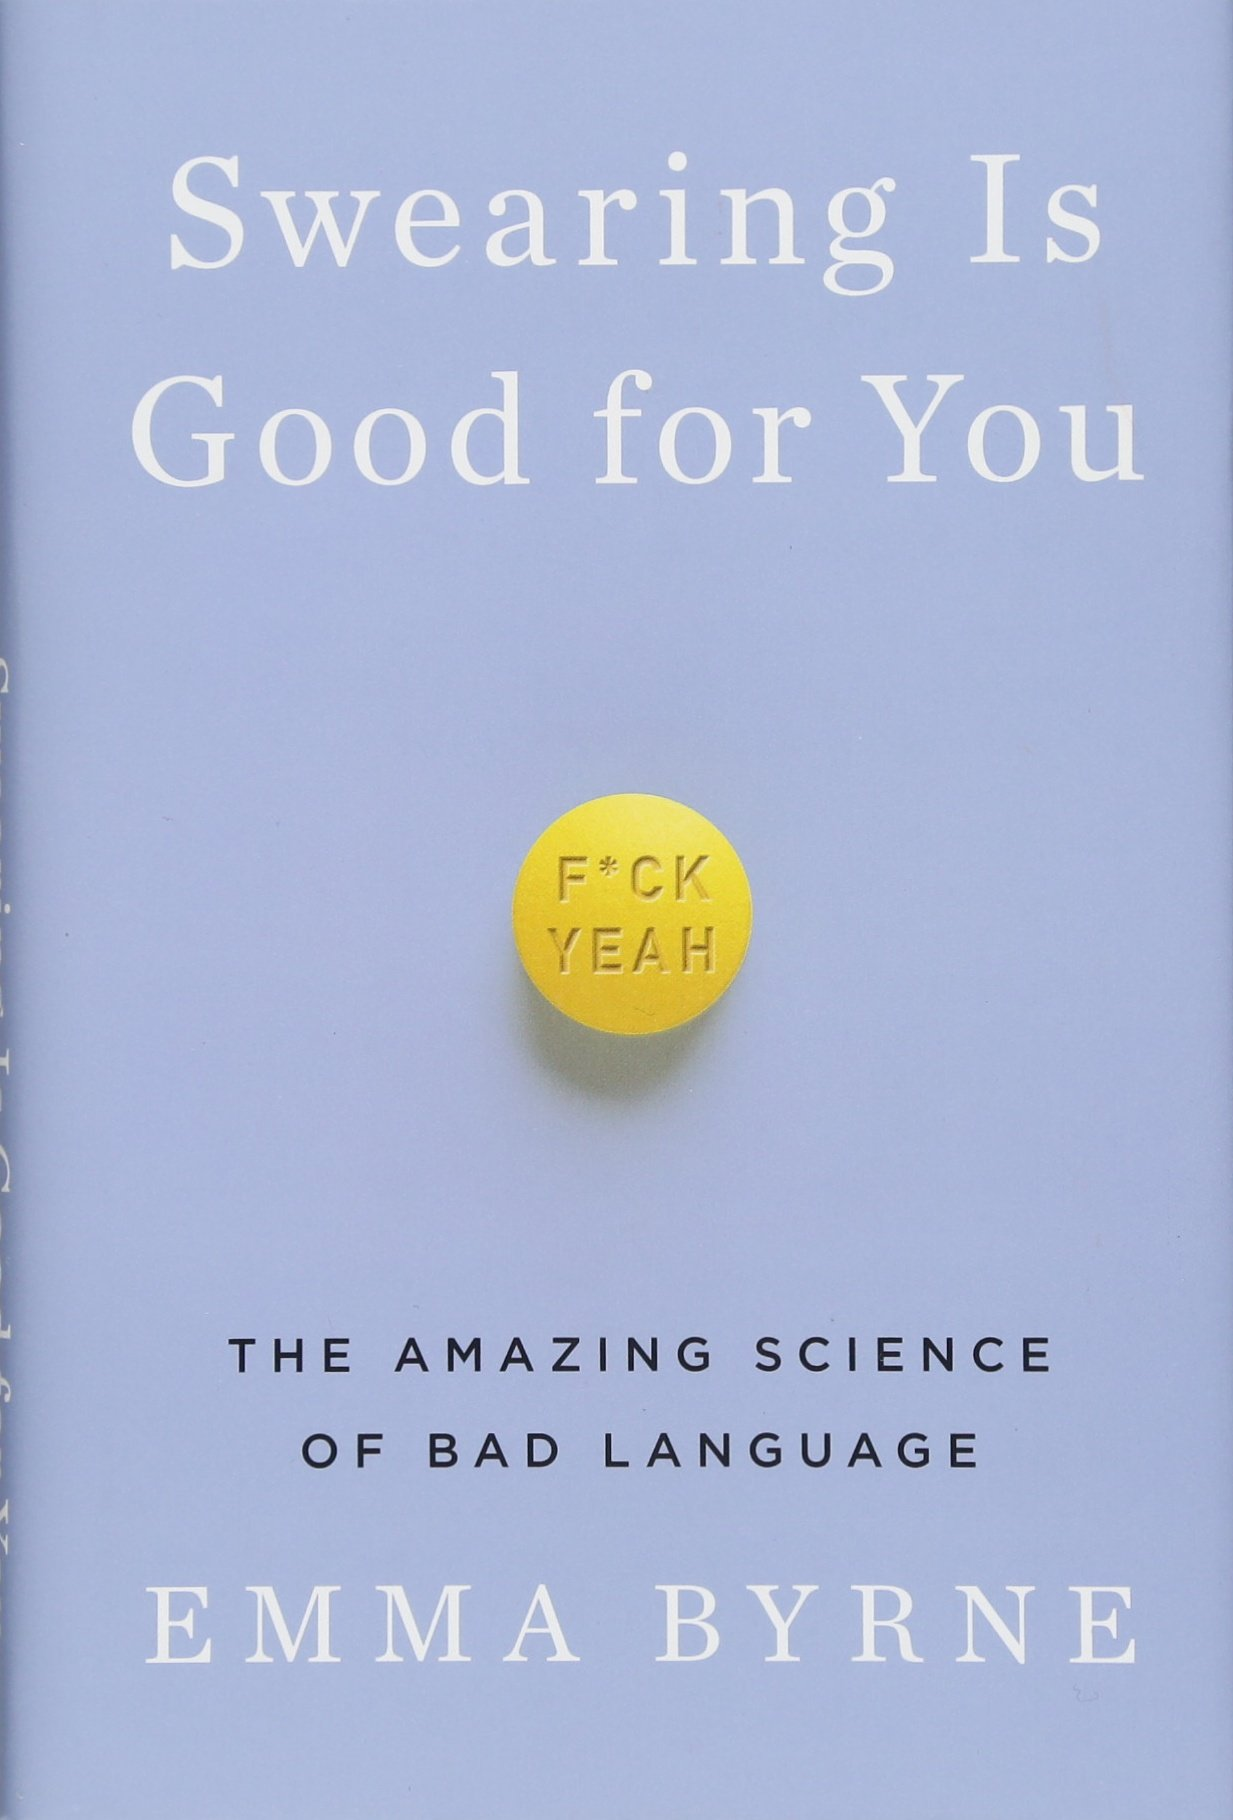 Swearing Is Good for You: The Amazing Science of Bad Language by W. W. Norton & Company